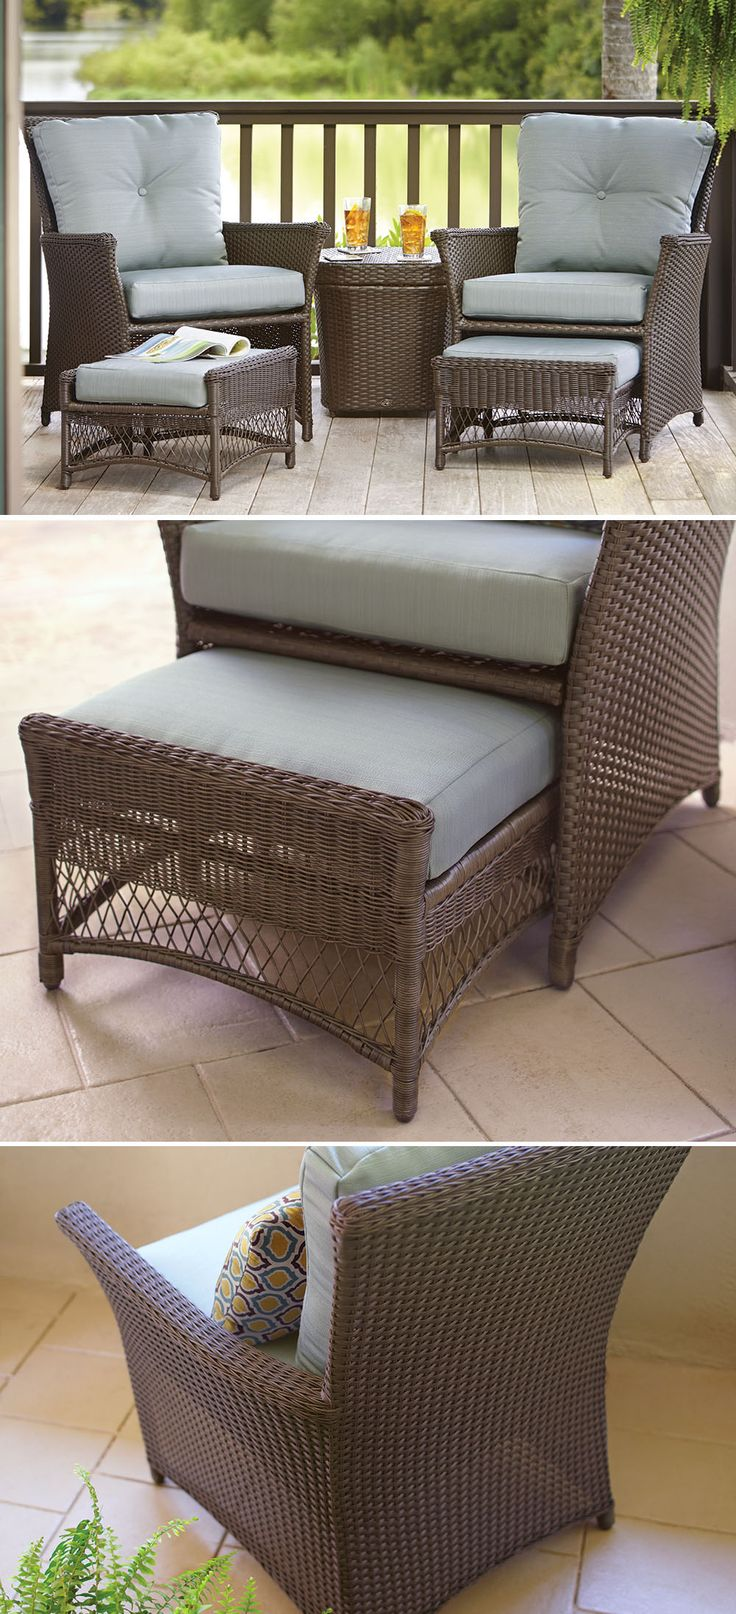 Best 25+ Small patio furniture ideas on Pinterest | Patio ...